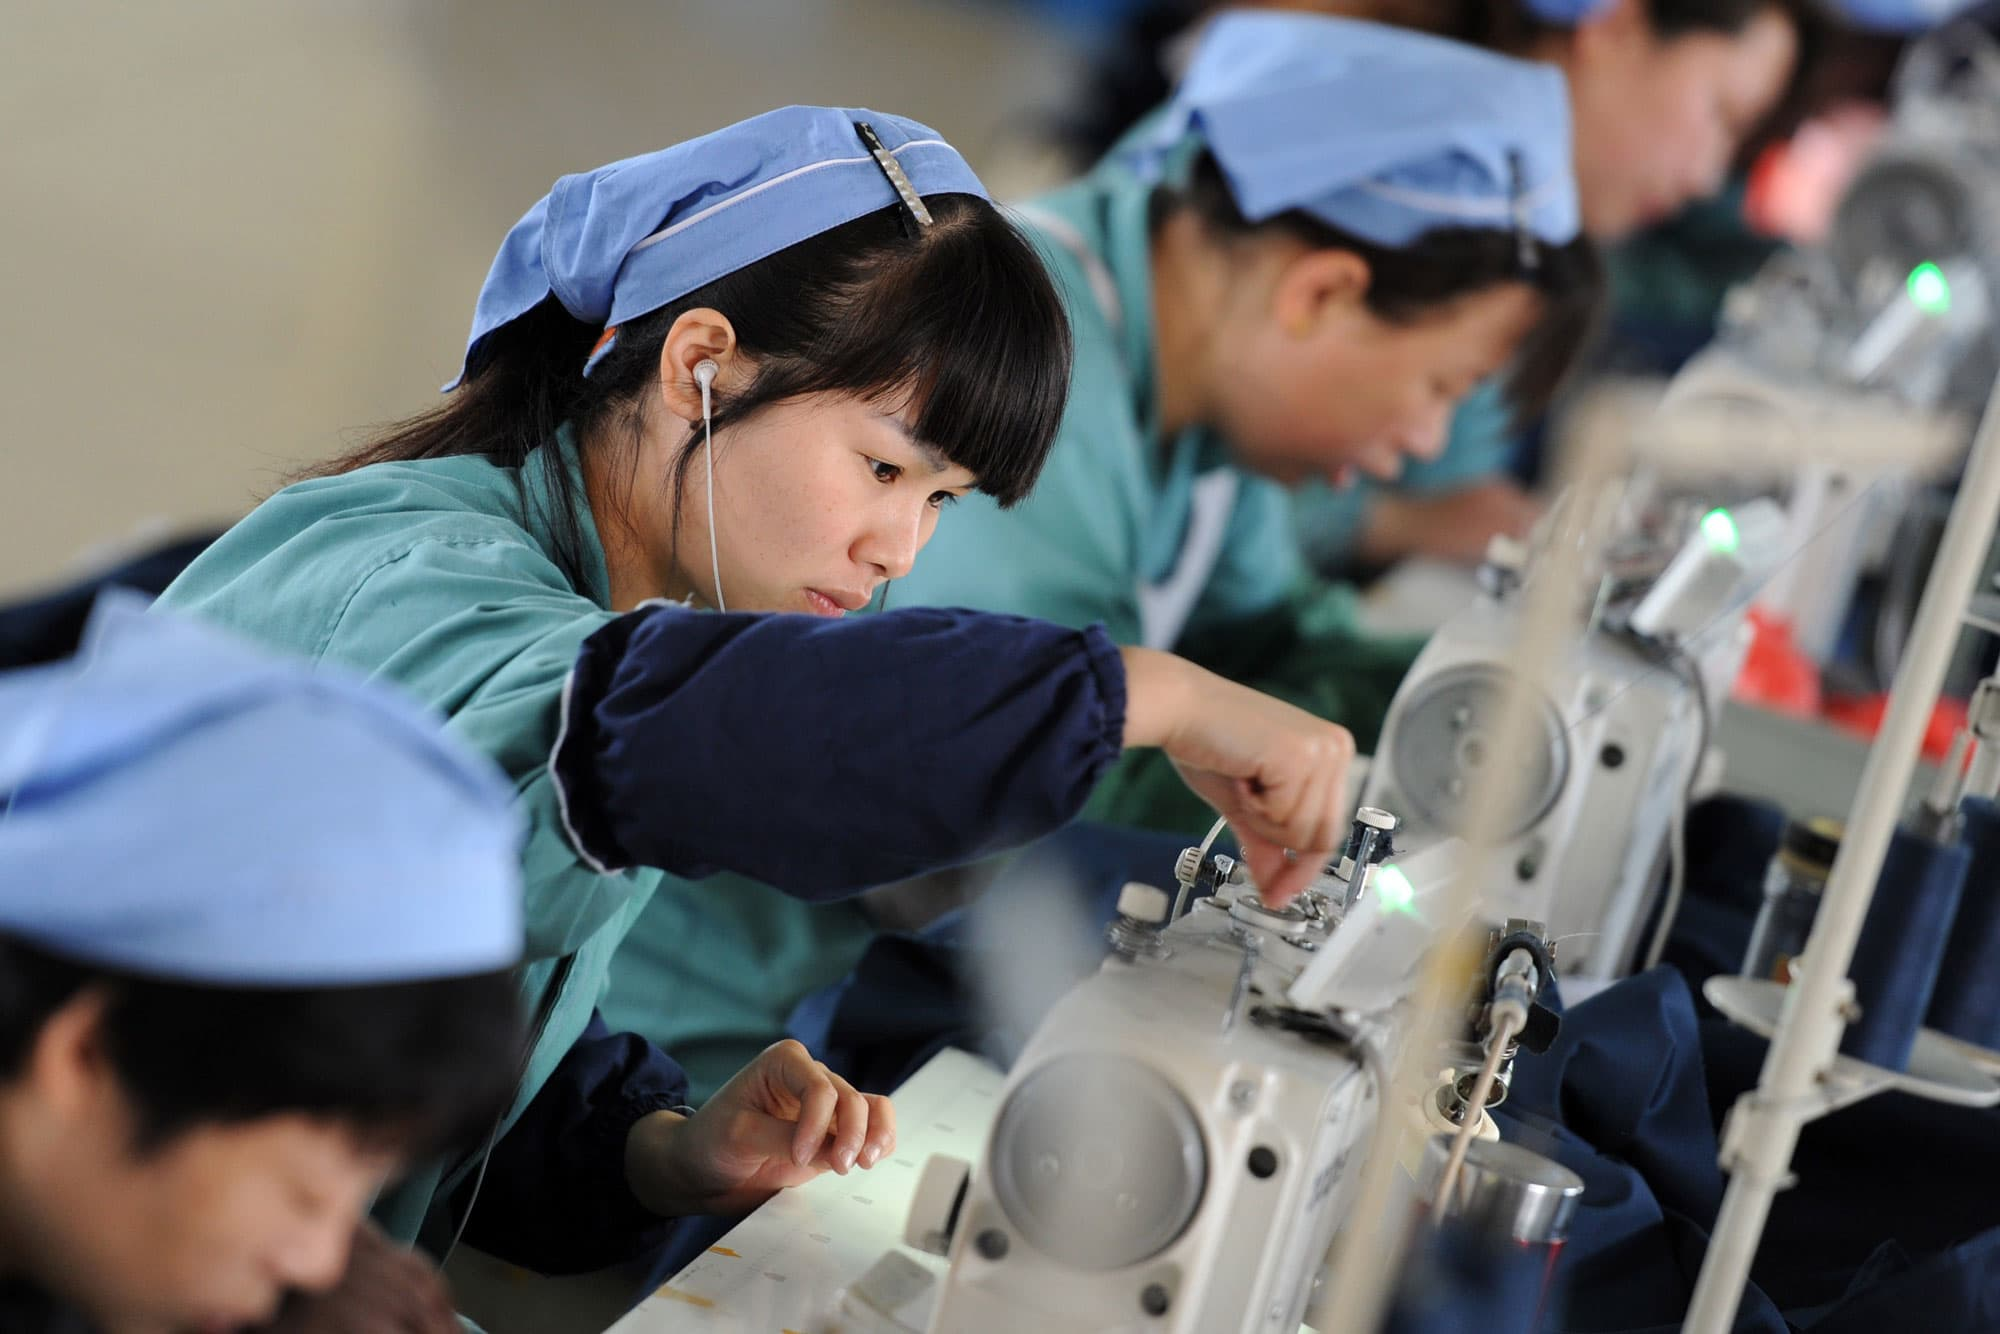 China's manufacturing activity expanded in December, a private survey shows